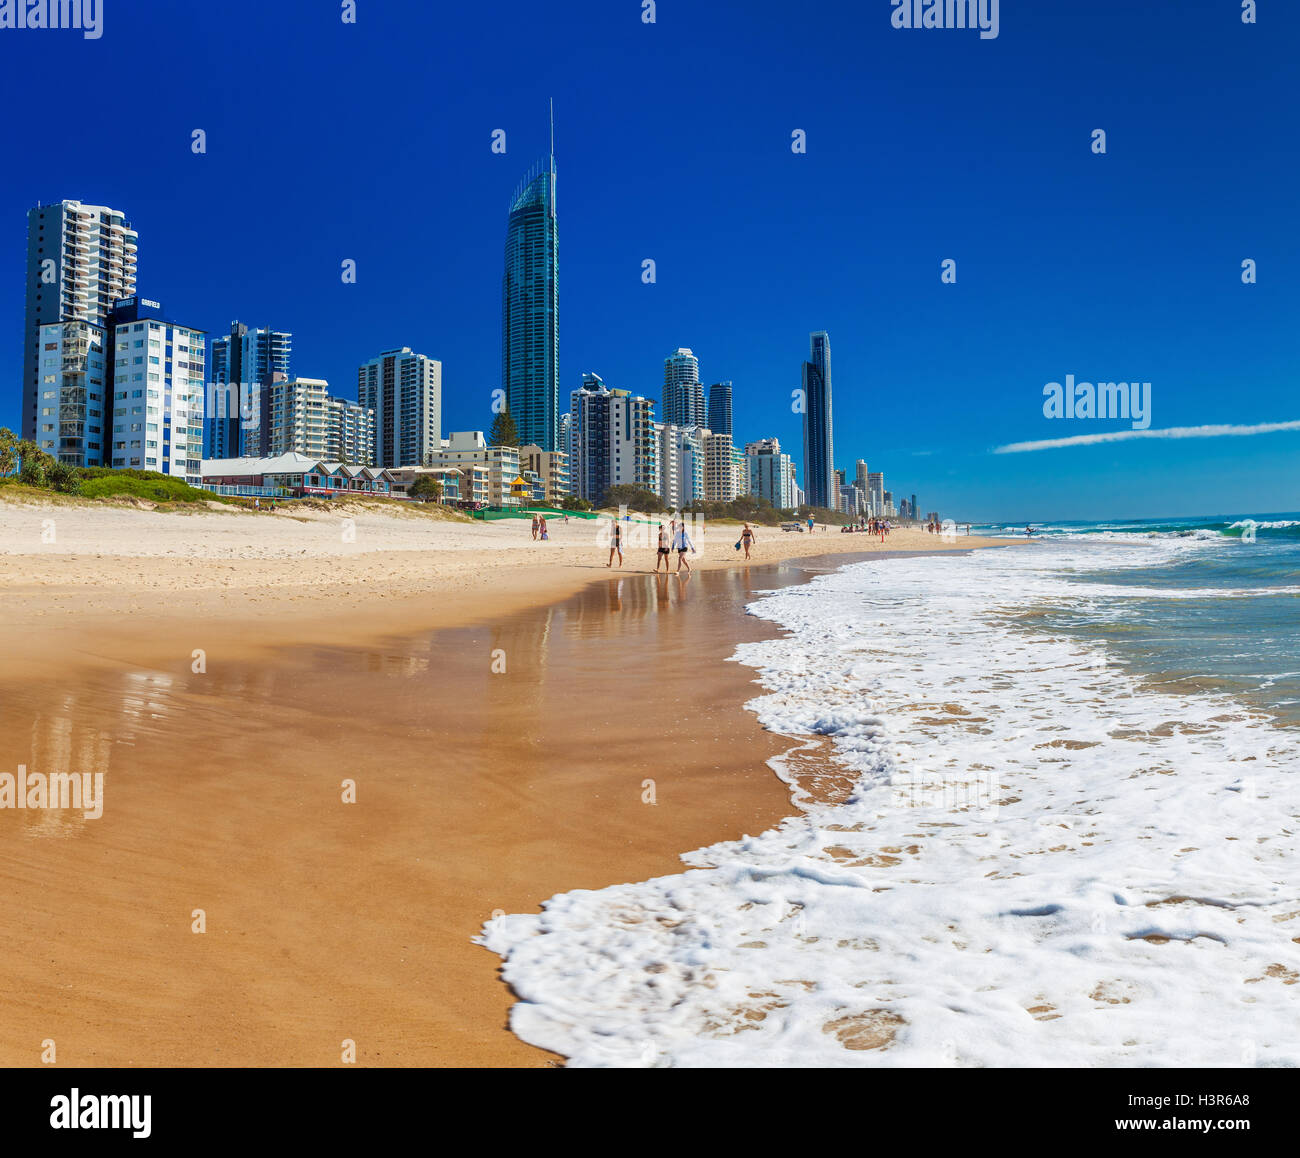 SURFERS PARADISE, AUS - SEPT 05 2016 Skyline and a beach of Surfers Paradise, Gold Coast. It one of Australia's - Stock Image